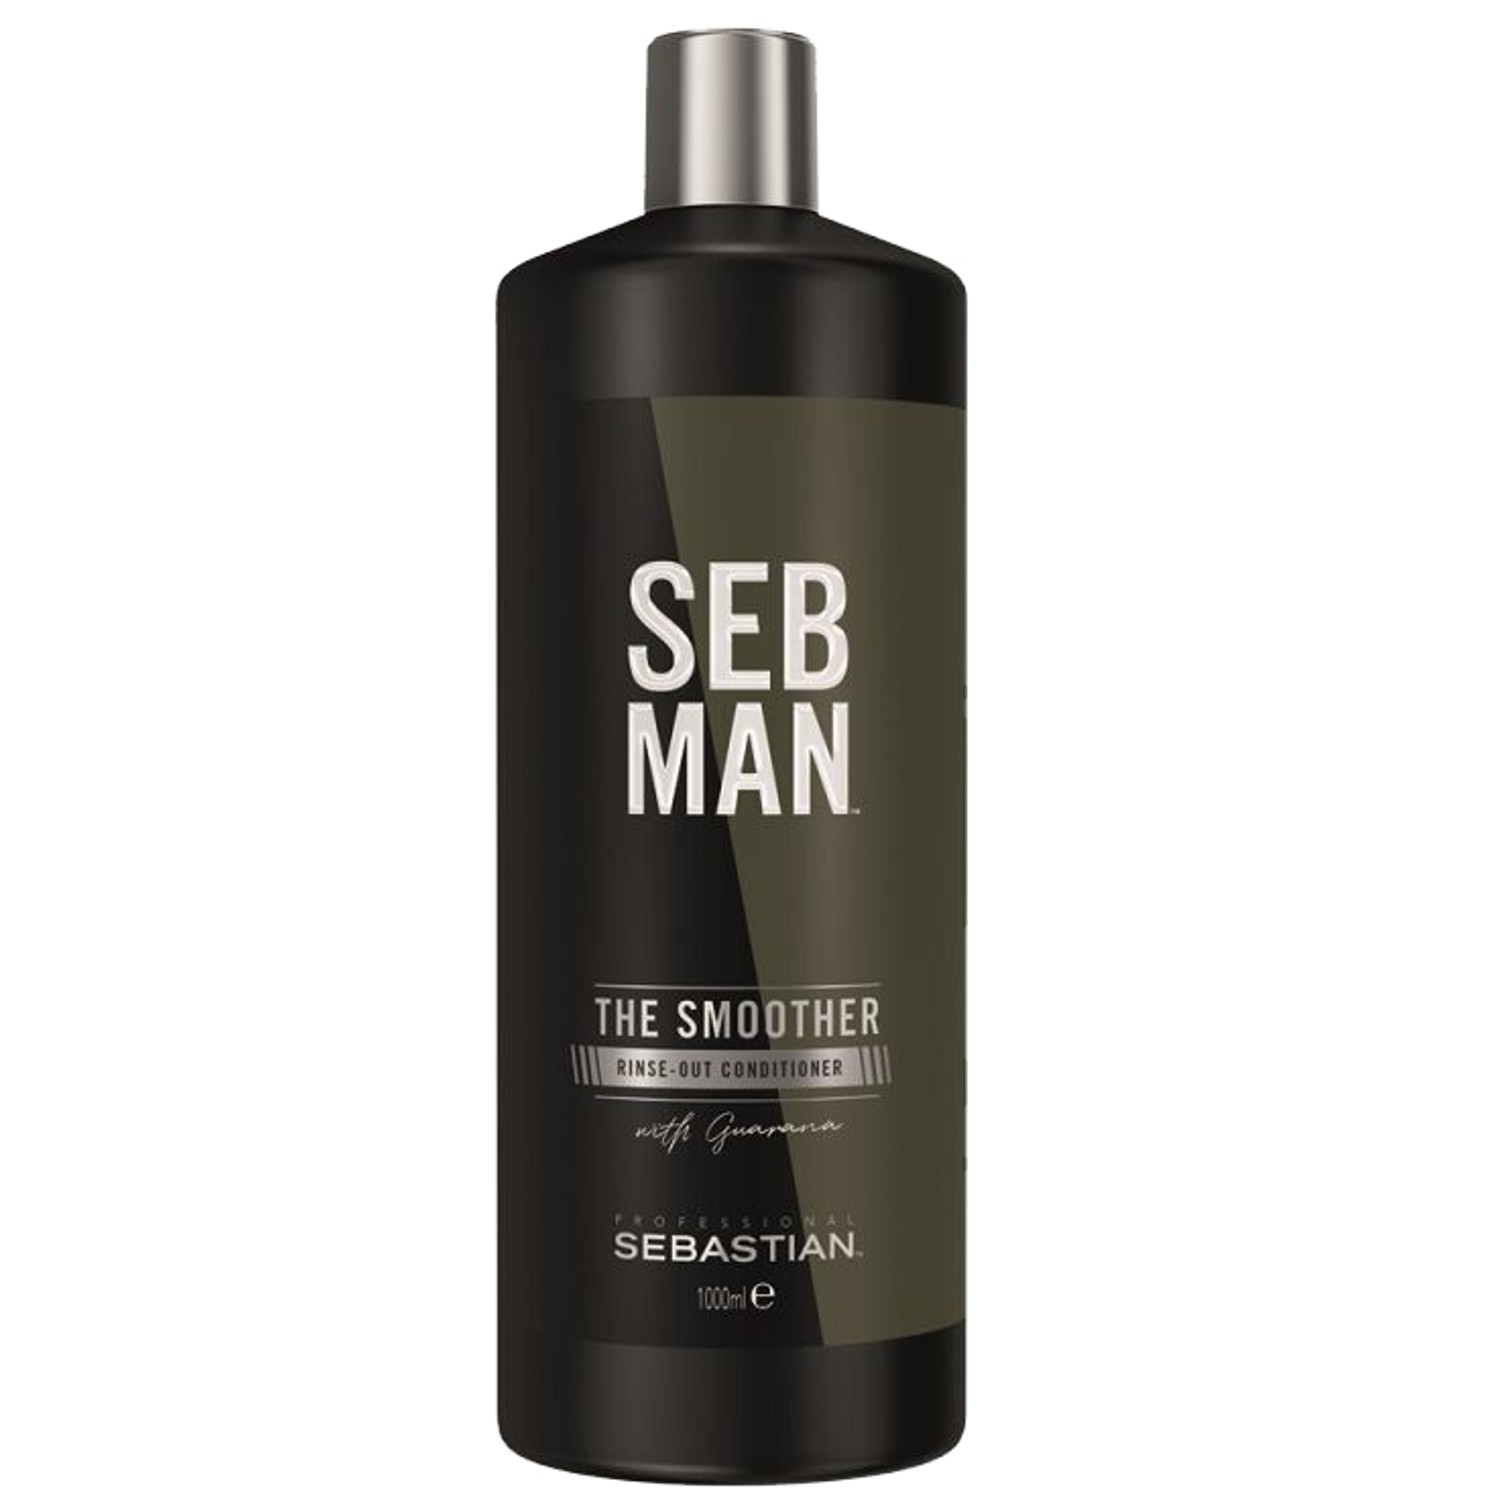 SEBASTIAN PROFESSIONAL SEB MAN The Smoother Rinse-Out Conditioner 1 L